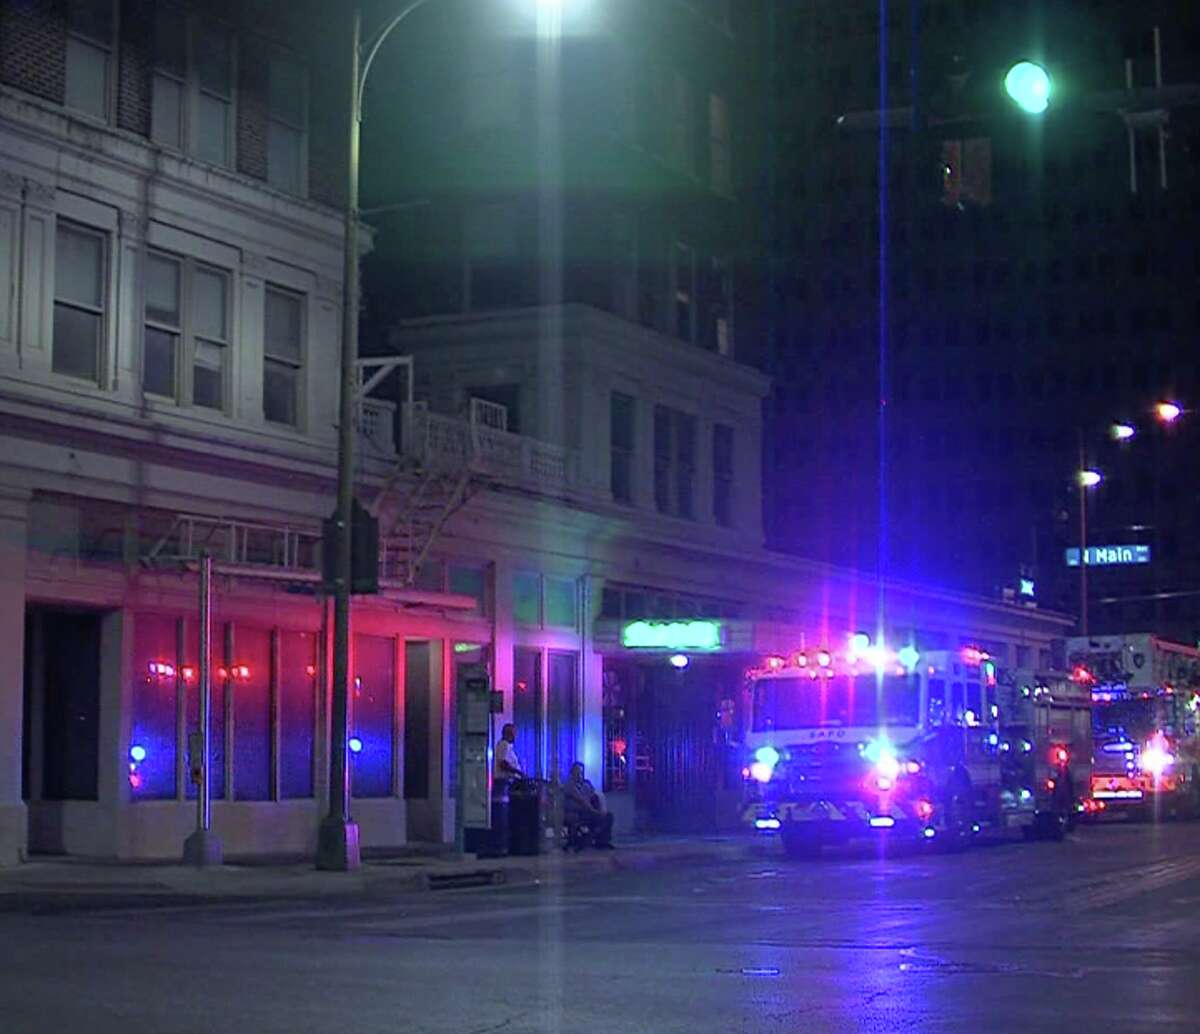 A water leak at a downtown apartment complex forced some residents to evacuate late Wednesday Aug. 19, 2020, according to the San Antonio Fire Department.